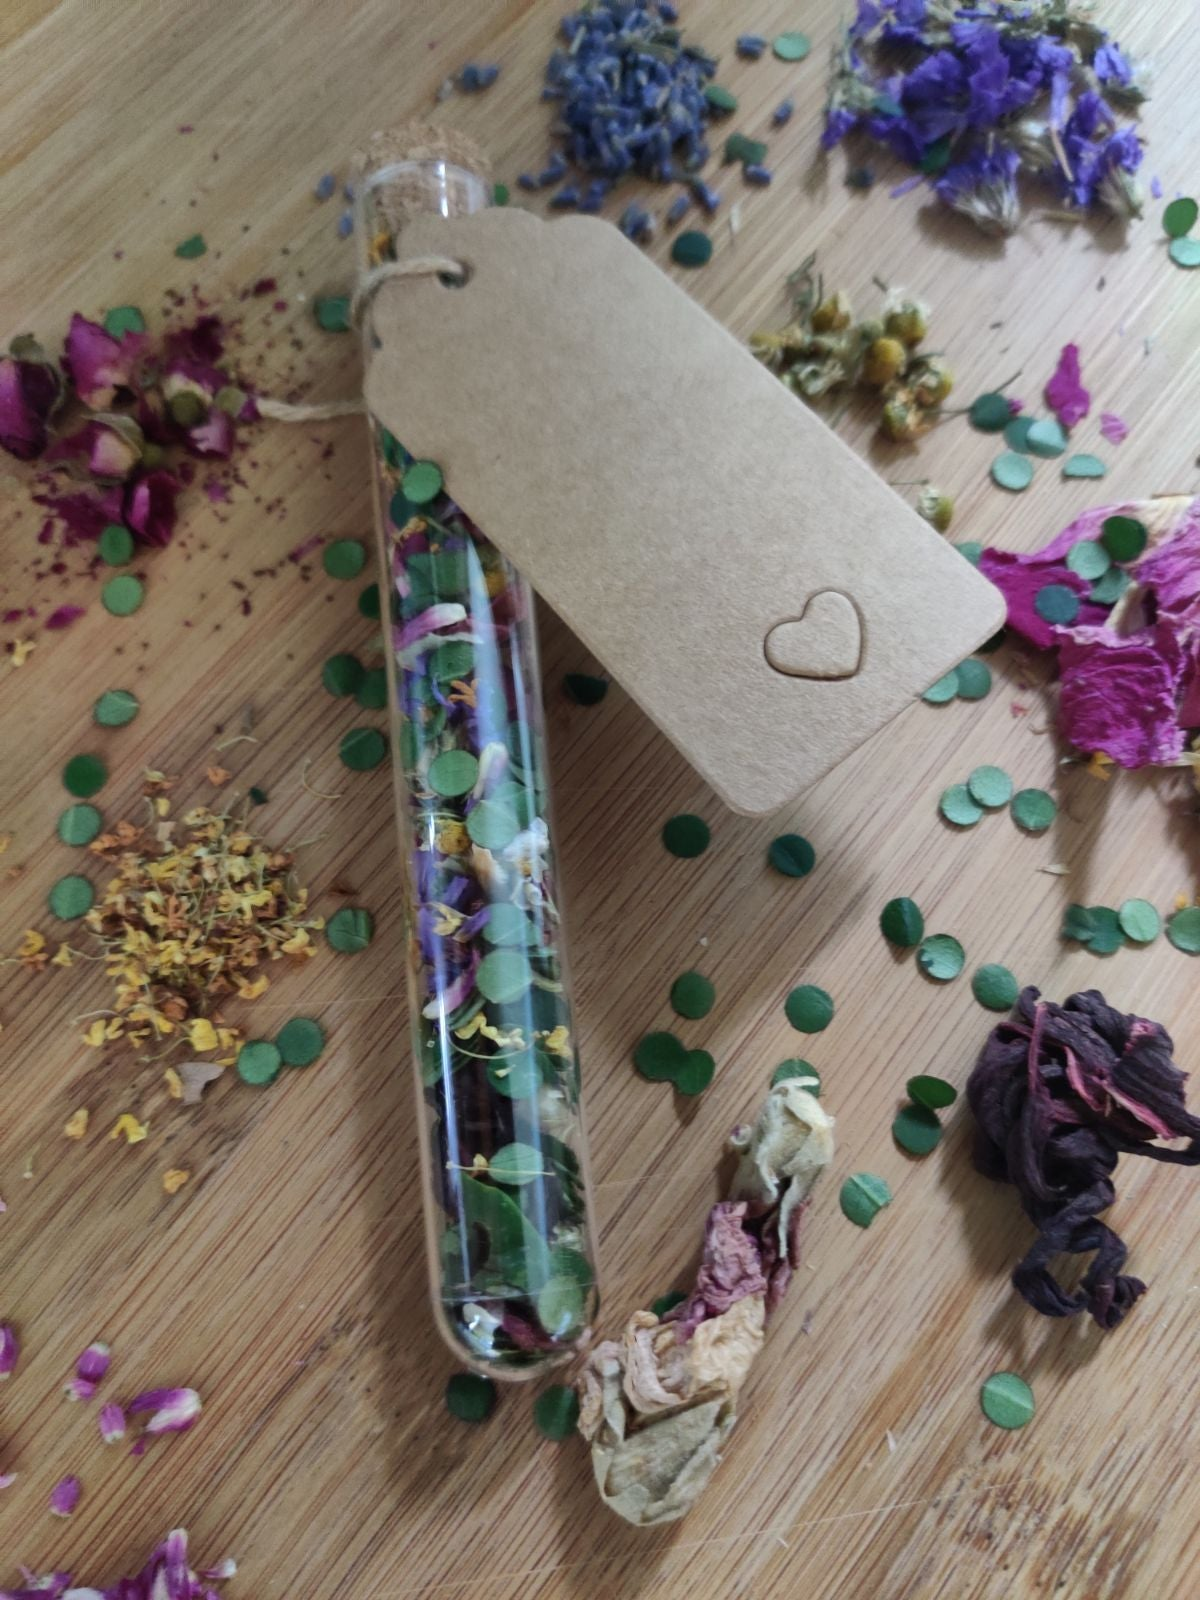 Biodegradable flower and leaf confetti